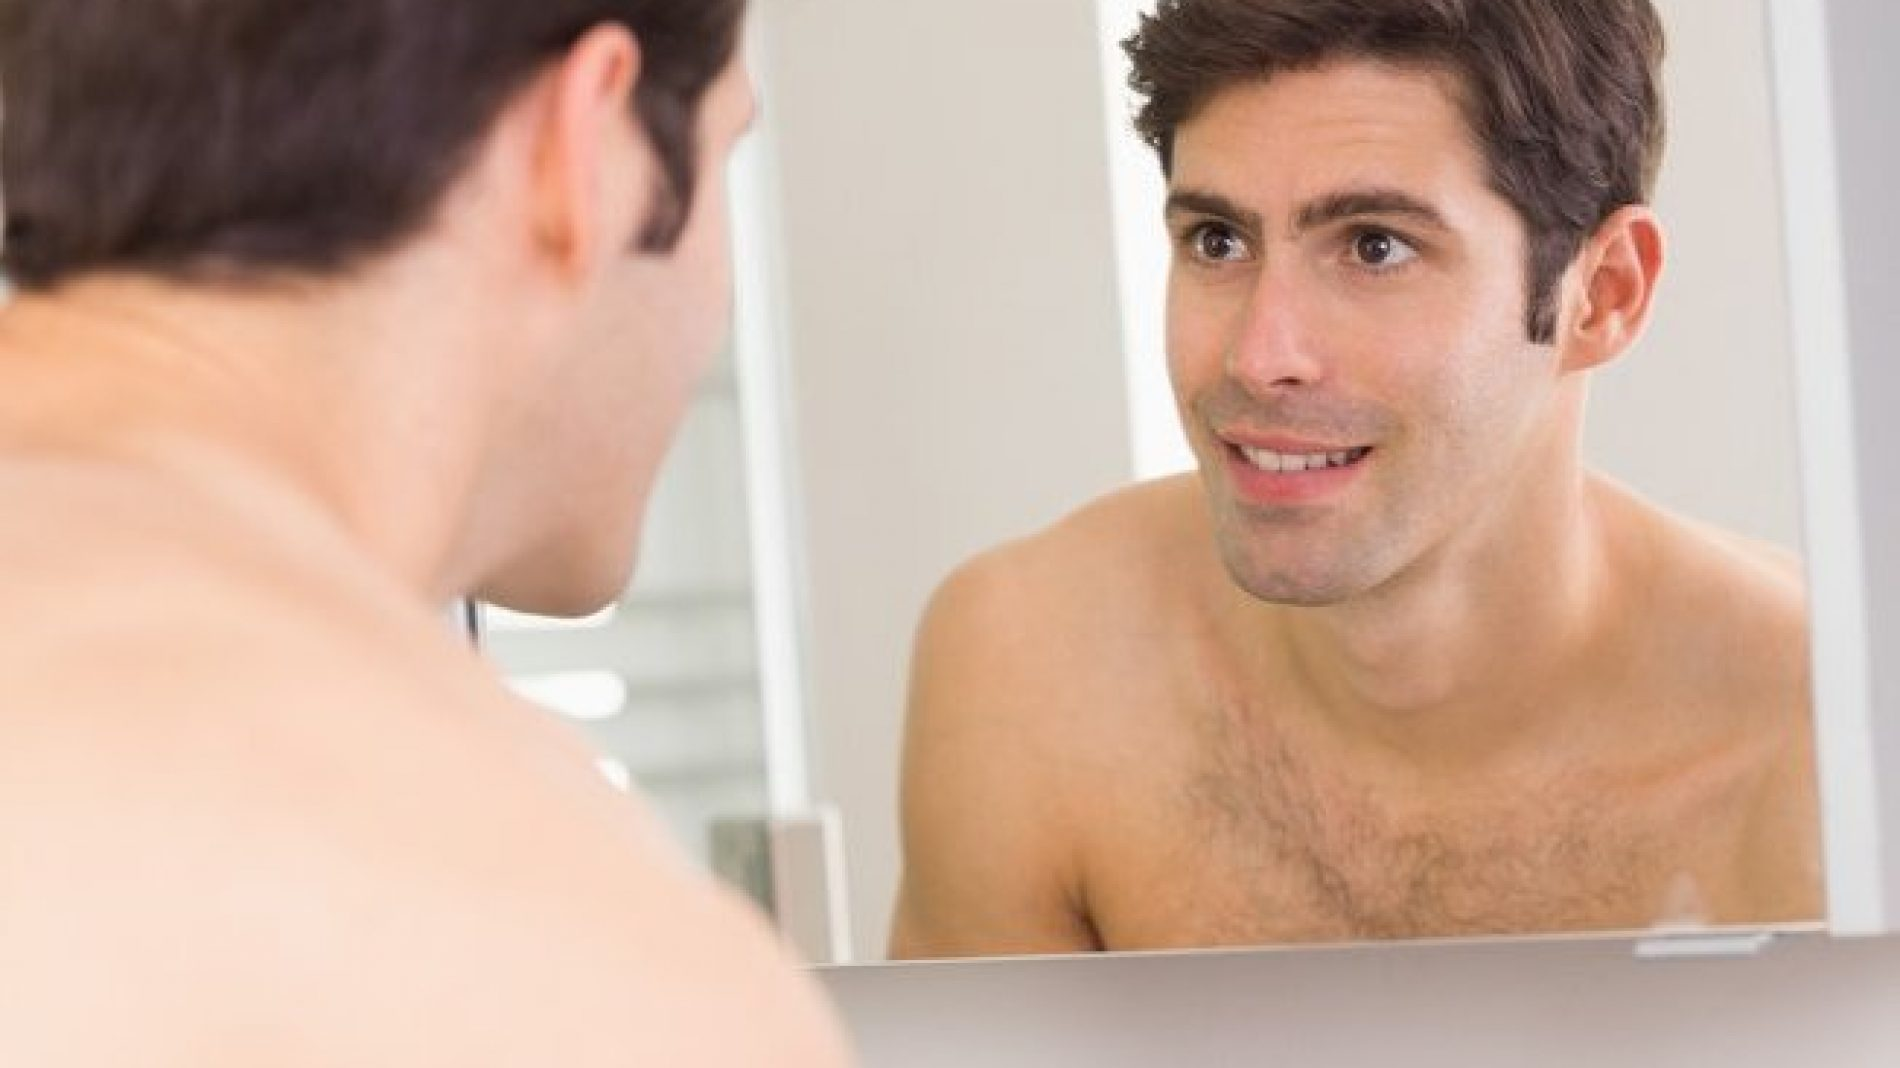 A shirtless man looking in the mirror